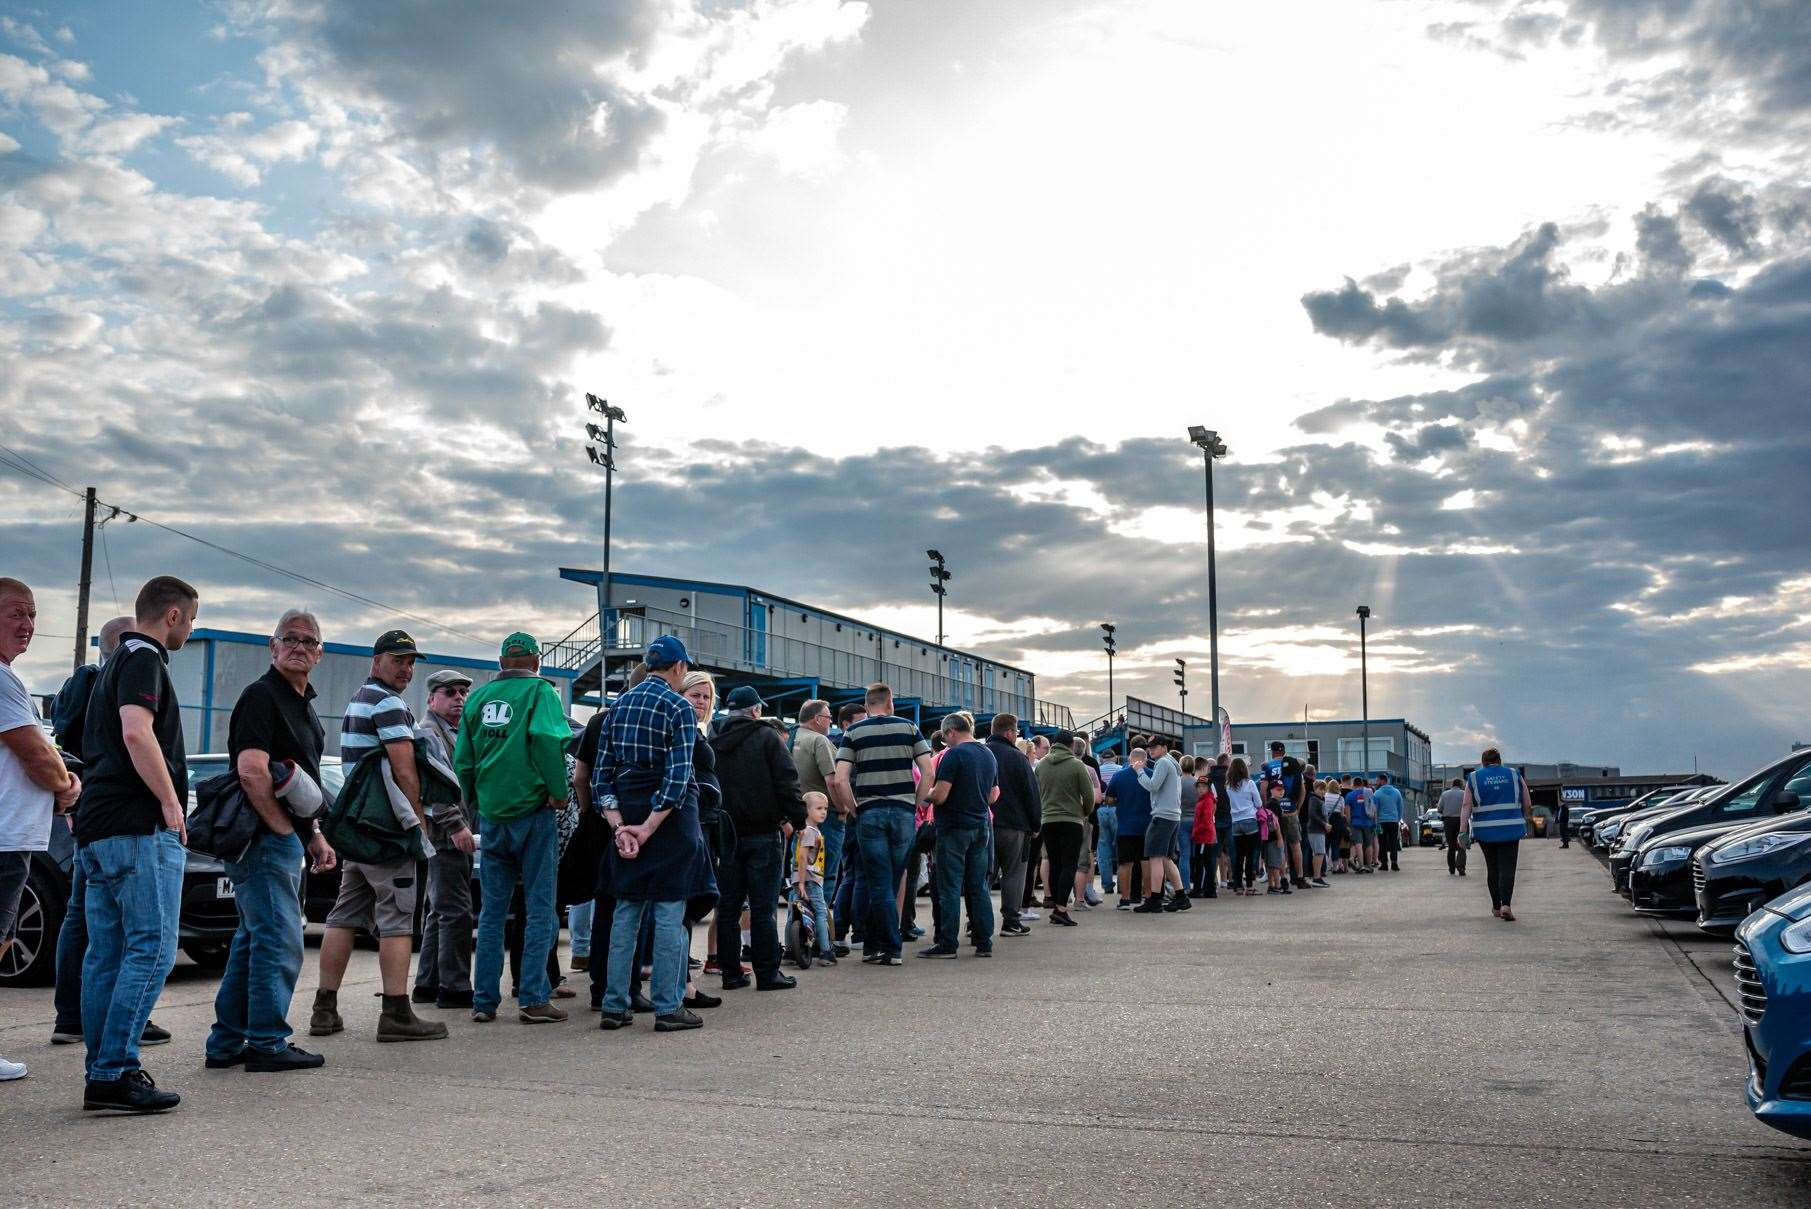 There was a huge queue at the Adrian Flux Arena when the King's Lynn Stars hosted Ipswich Witches in a recent home meeting.